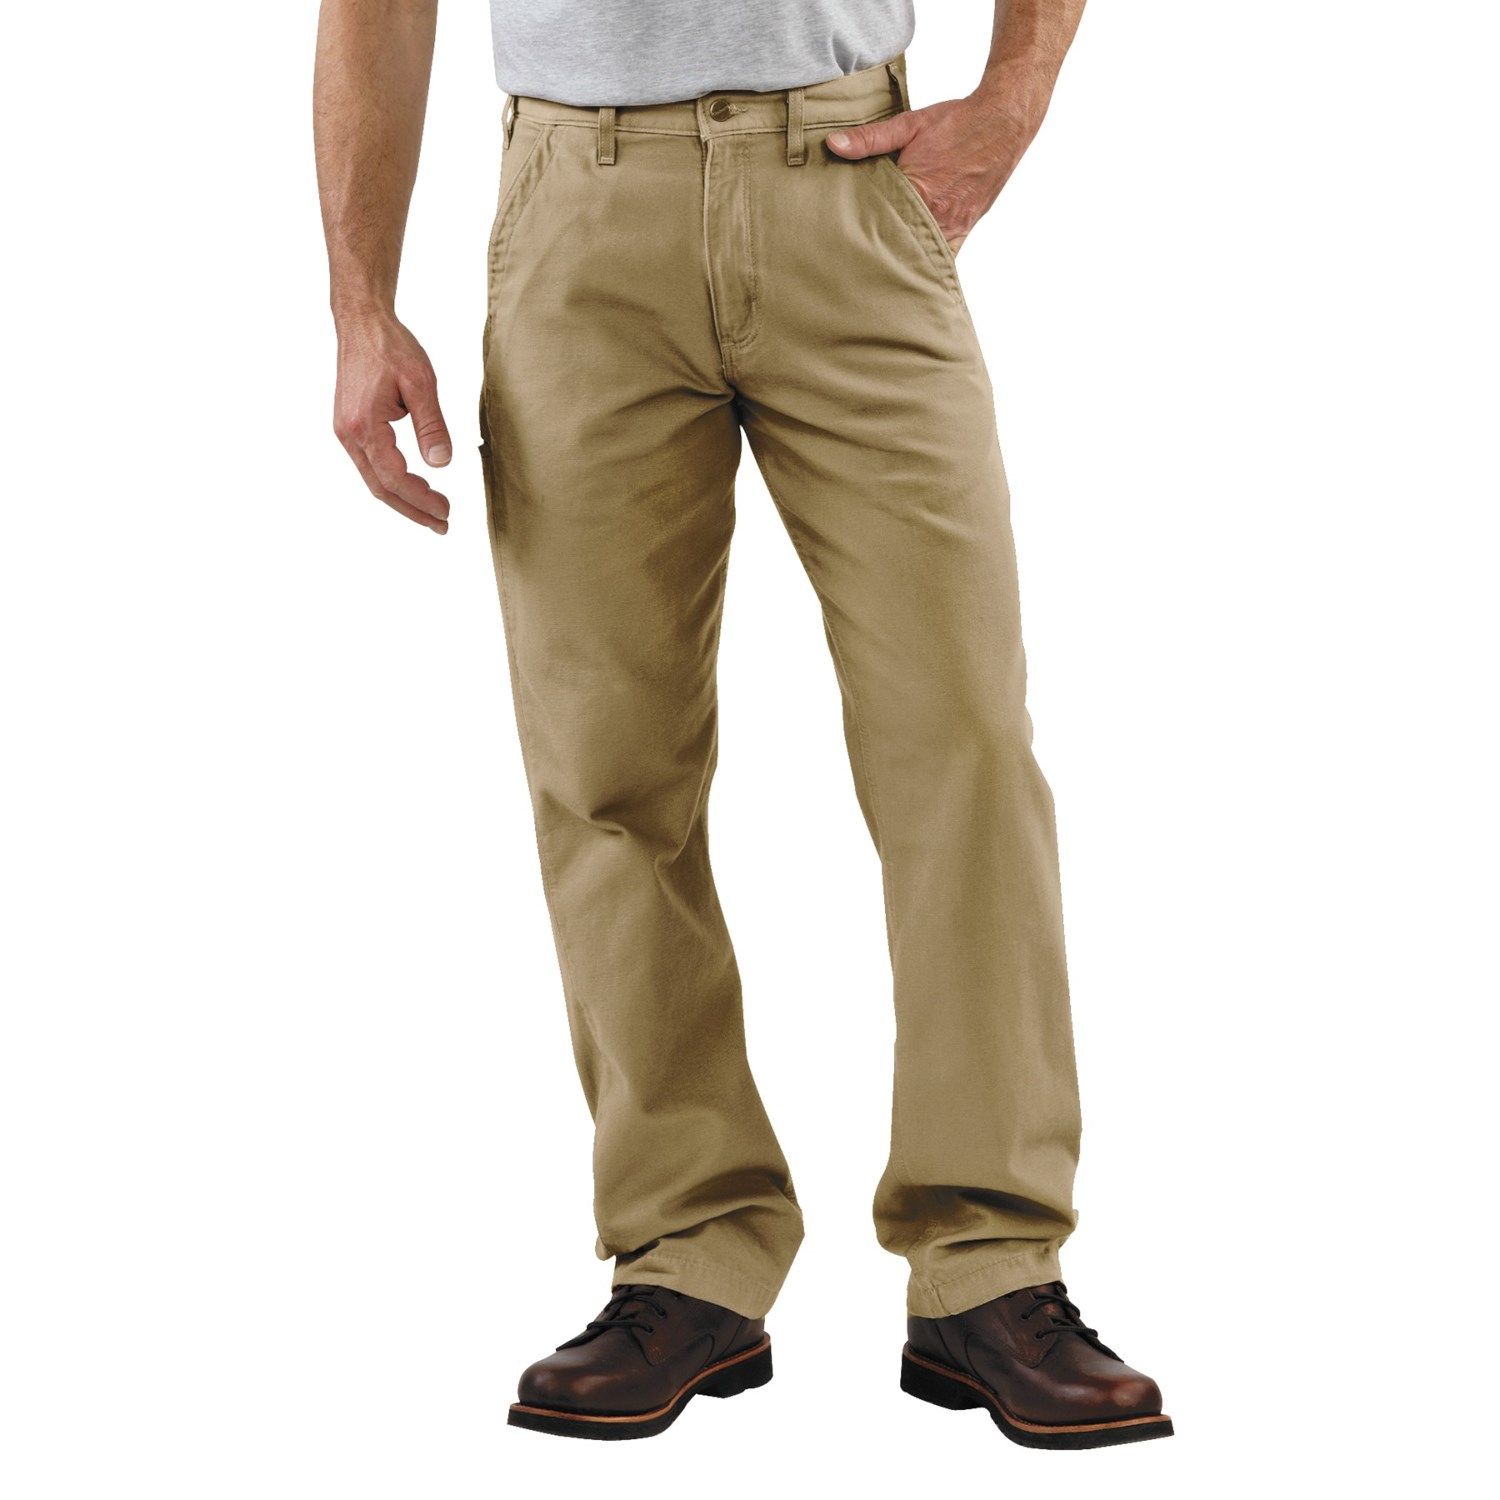 Free shipping BOTH ways on pants mens khaki, from our vast selection of styles. Fast delivery, and 24/7/ real-person service with a smile. Click or call